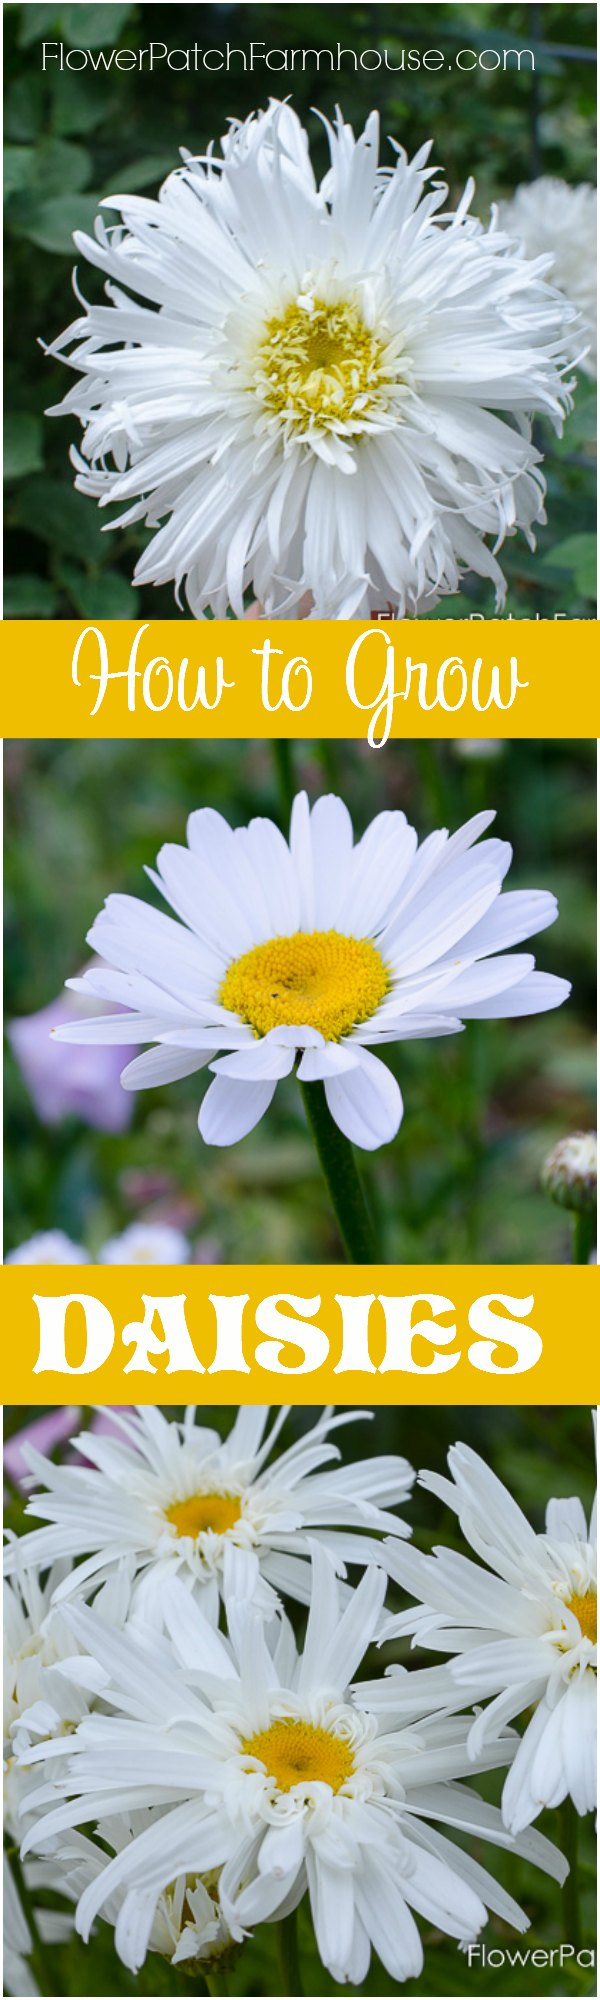 How to Grow Shasta Days, start from seeds or take root divisions. Add a bright touch to your Cottage Garden. FlowerPatchFarmhouse.com